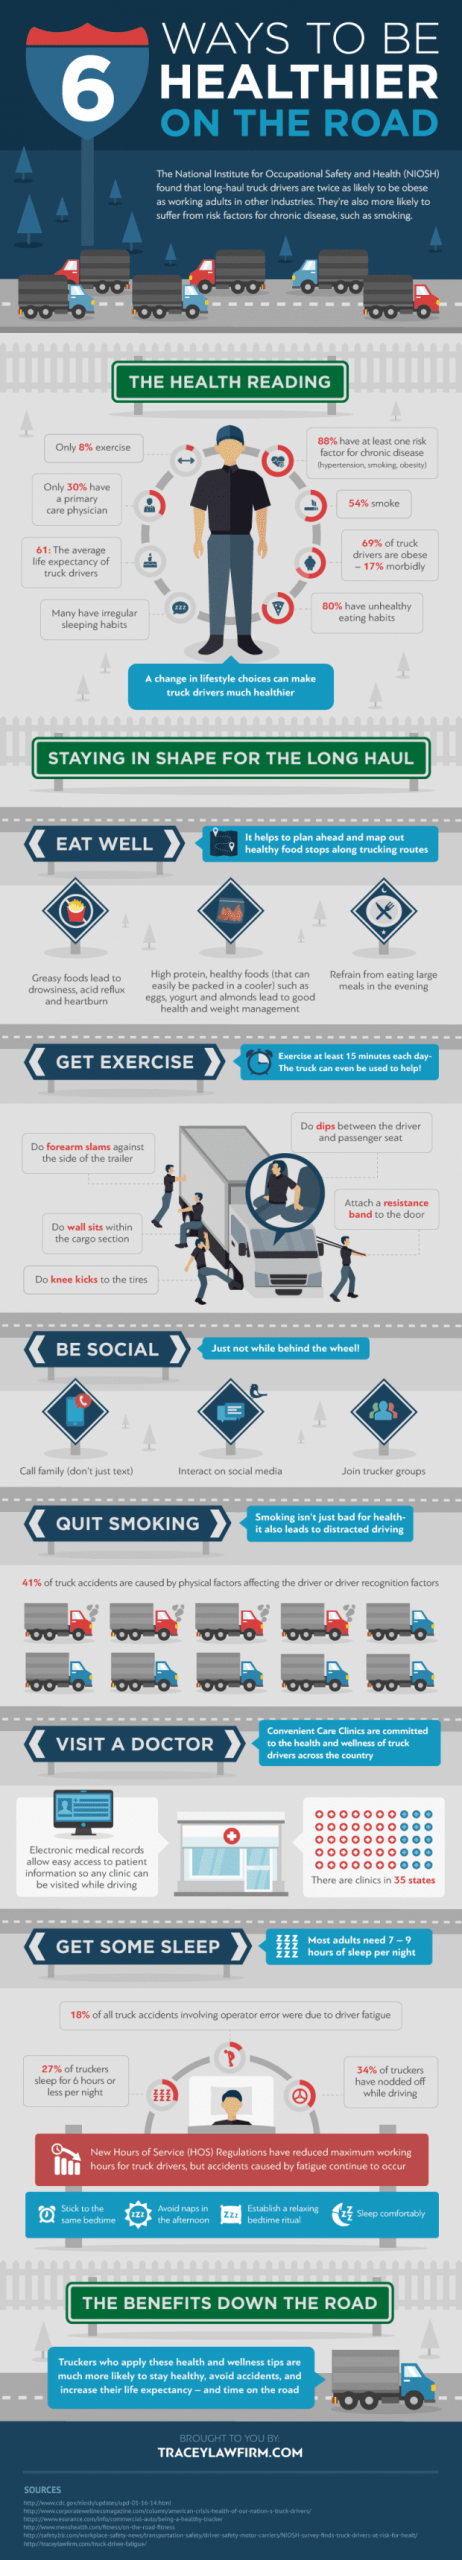 6 Ways To Be Healthier On The Road